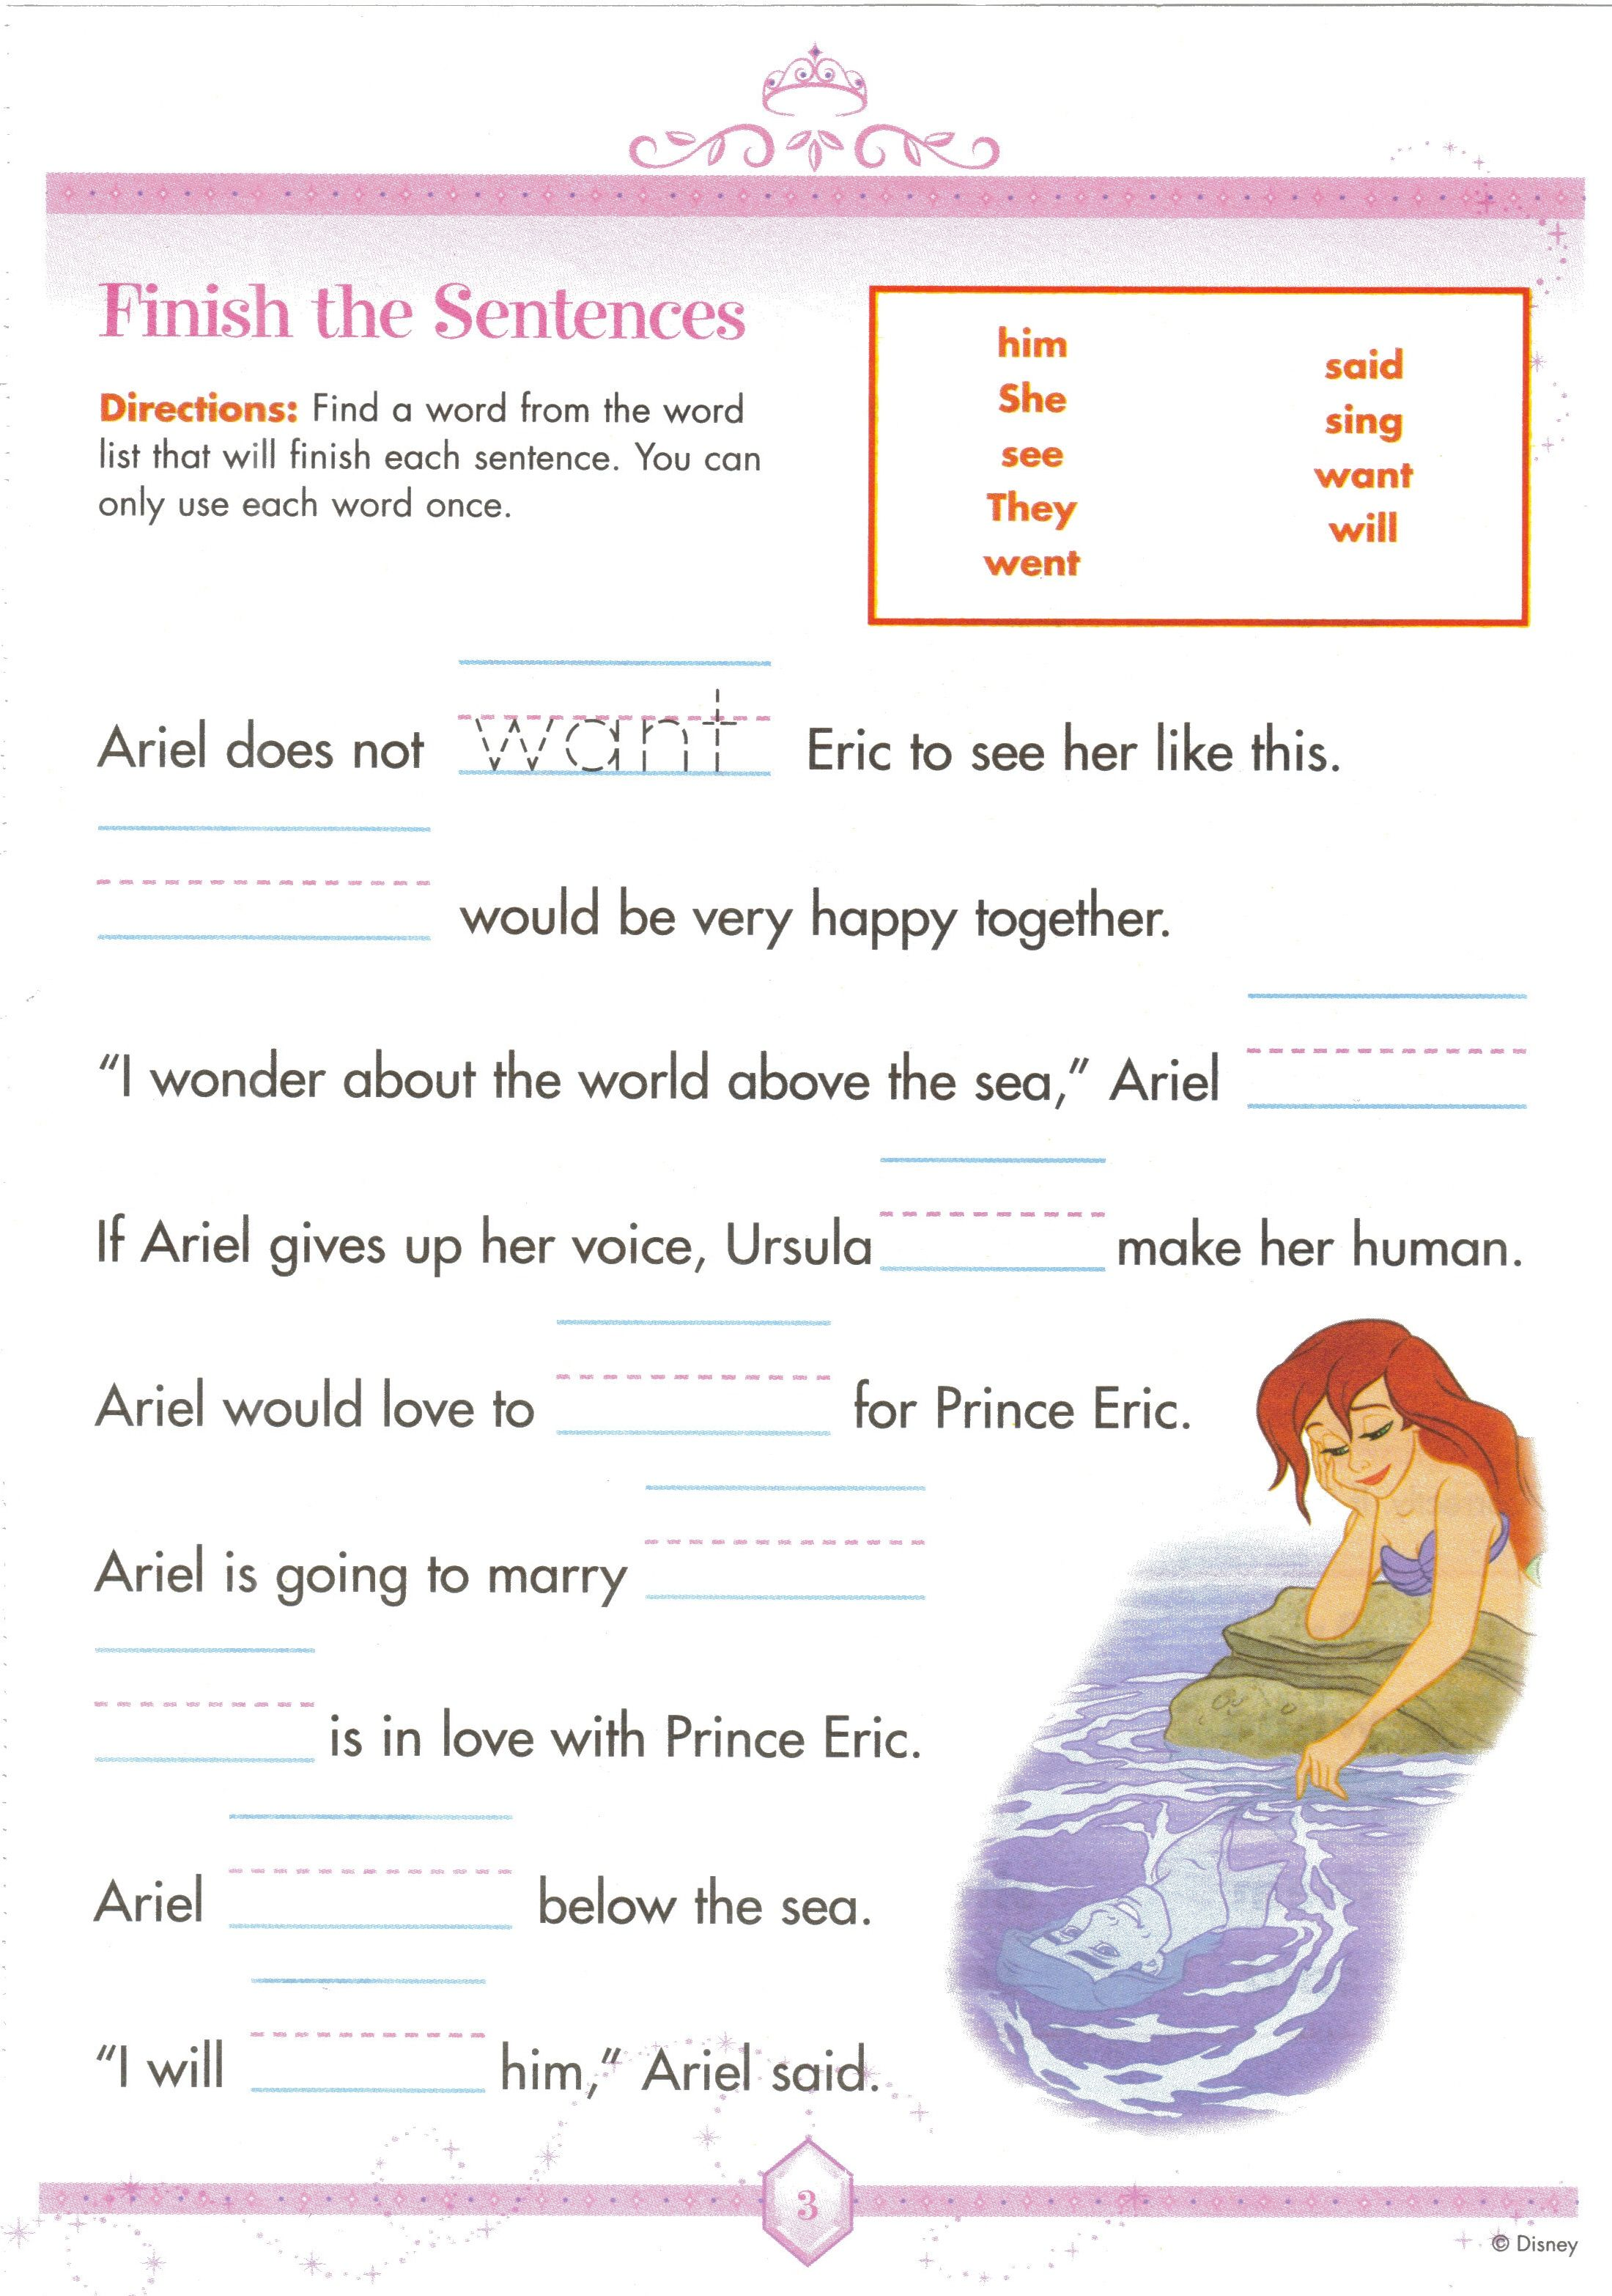 Weirdmailus  Pretty  Images About Worksheets On Pinterest  Fun Facts For Kids  With Lovable  Images About Worksheets On Pinterest  Fun Facts For Kids Earth Day Worksheets And Jungles With Delightful Nelson Handwriting Worksheets Printable Also Printable Dictionary Worksheets In Addition Worksheets For Subject And Predicate And Practice Latitude And Longitude Worksheets As Well As Kindergarten Worksheets Numbers  Additionally Australian Maths Worksheets From Pinterestcom With Weirdmailus  Lovable  Images About Worksheets On Pinterest  Fun Facts For Kids  With Delightful  Images About Worksheets On Pinterest  Fun Facts For Kids Earth Day Worksheets And Jungles And Pretty Nelson Handwriting Worksheets Printable Also Printable Dictionary Worksheets In Addition Worksheets For Subject And Predicate From Pinterestcom